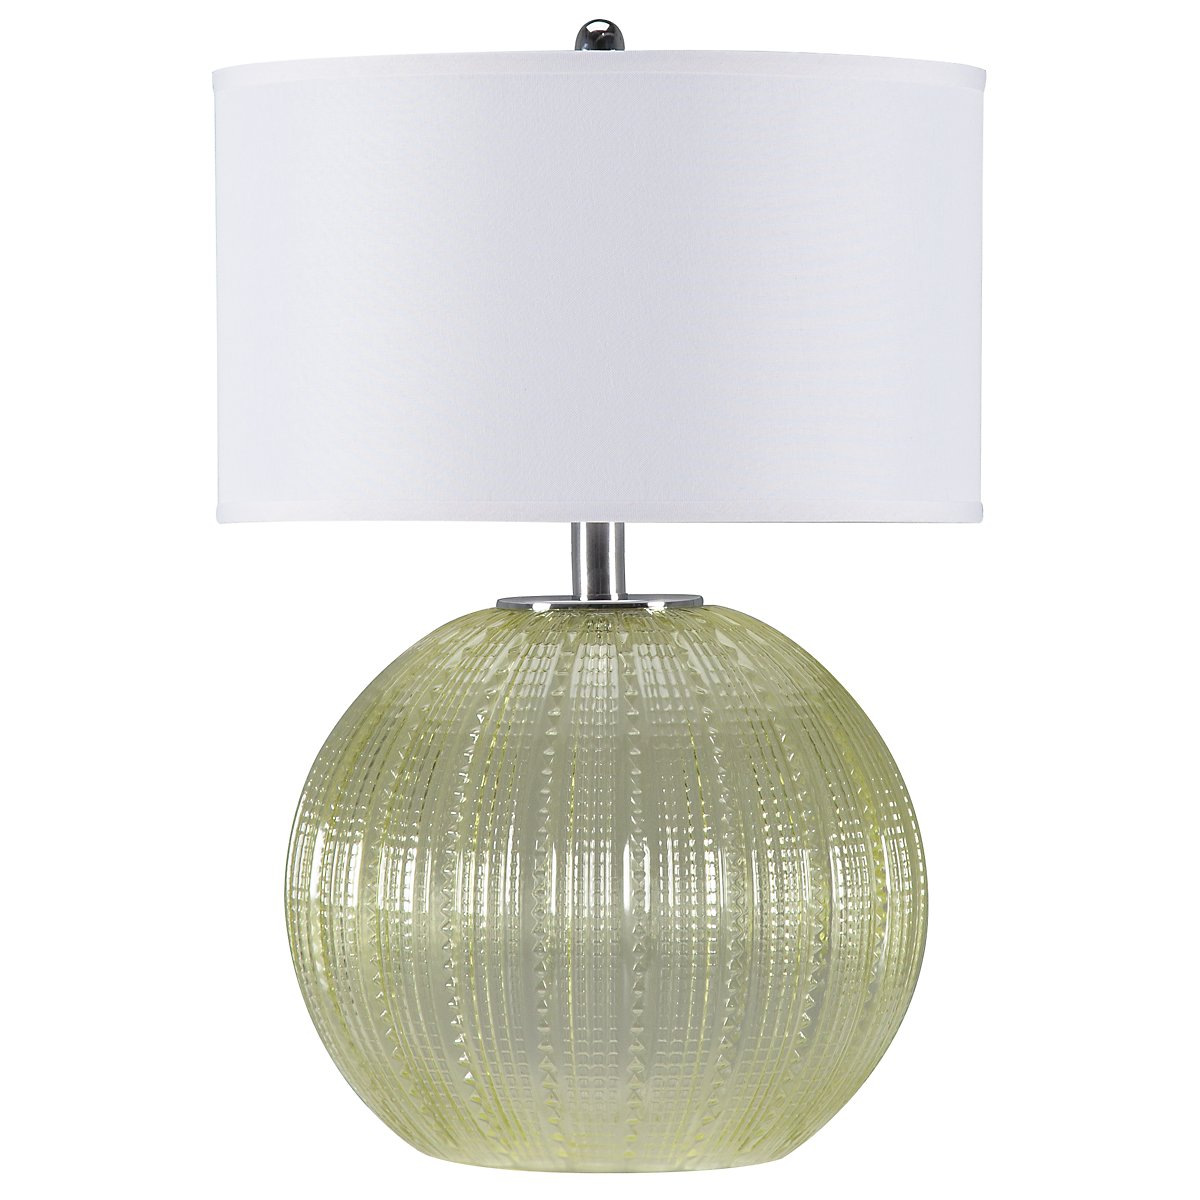 Urchin Green Table Lamp